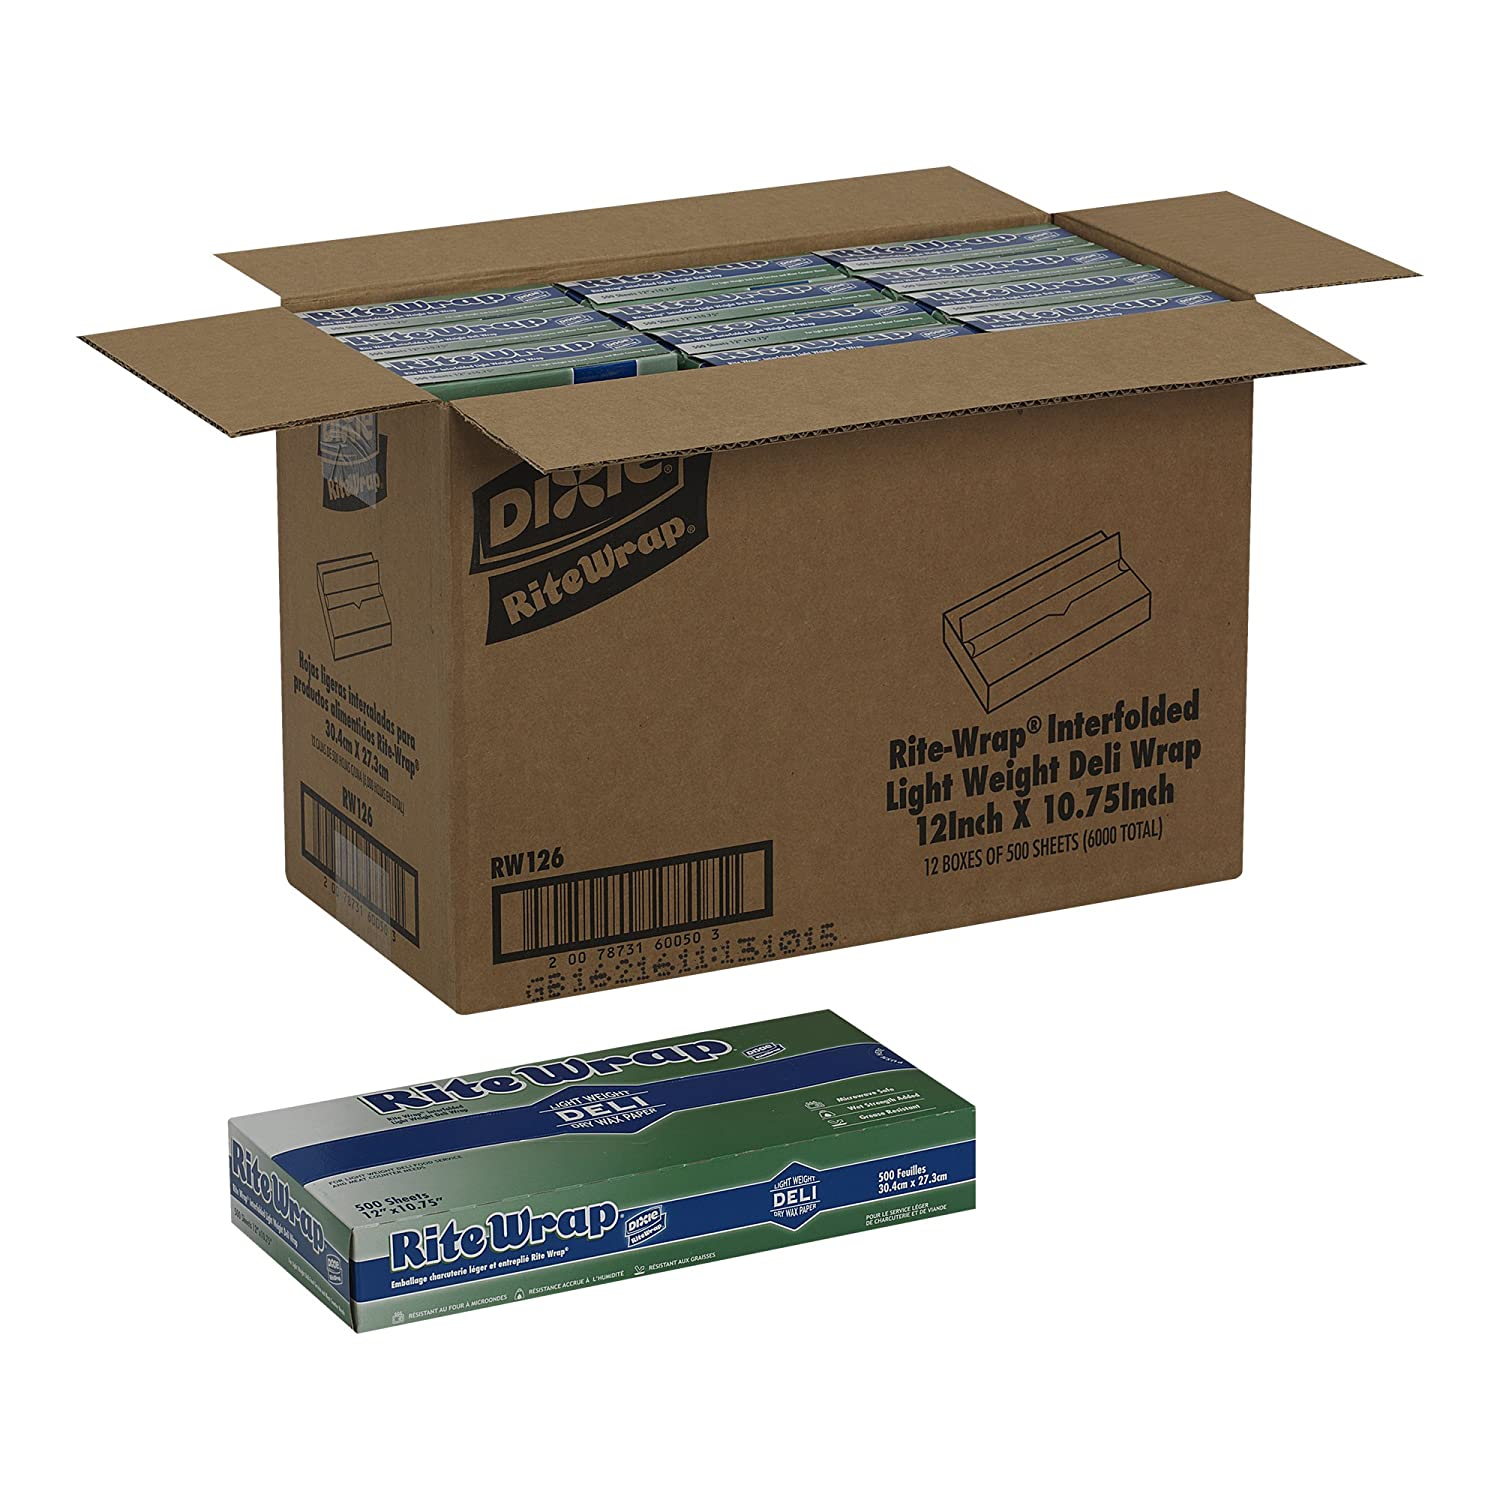 RW66 White Georgia-Pacific Light-Weight Interfolded Dry Wax Deli Paper 6 Width x 10.75 Length by GP PRO Case of 12 Boxes, 500 Sheets Per Box DIXIE Rite-Wrap